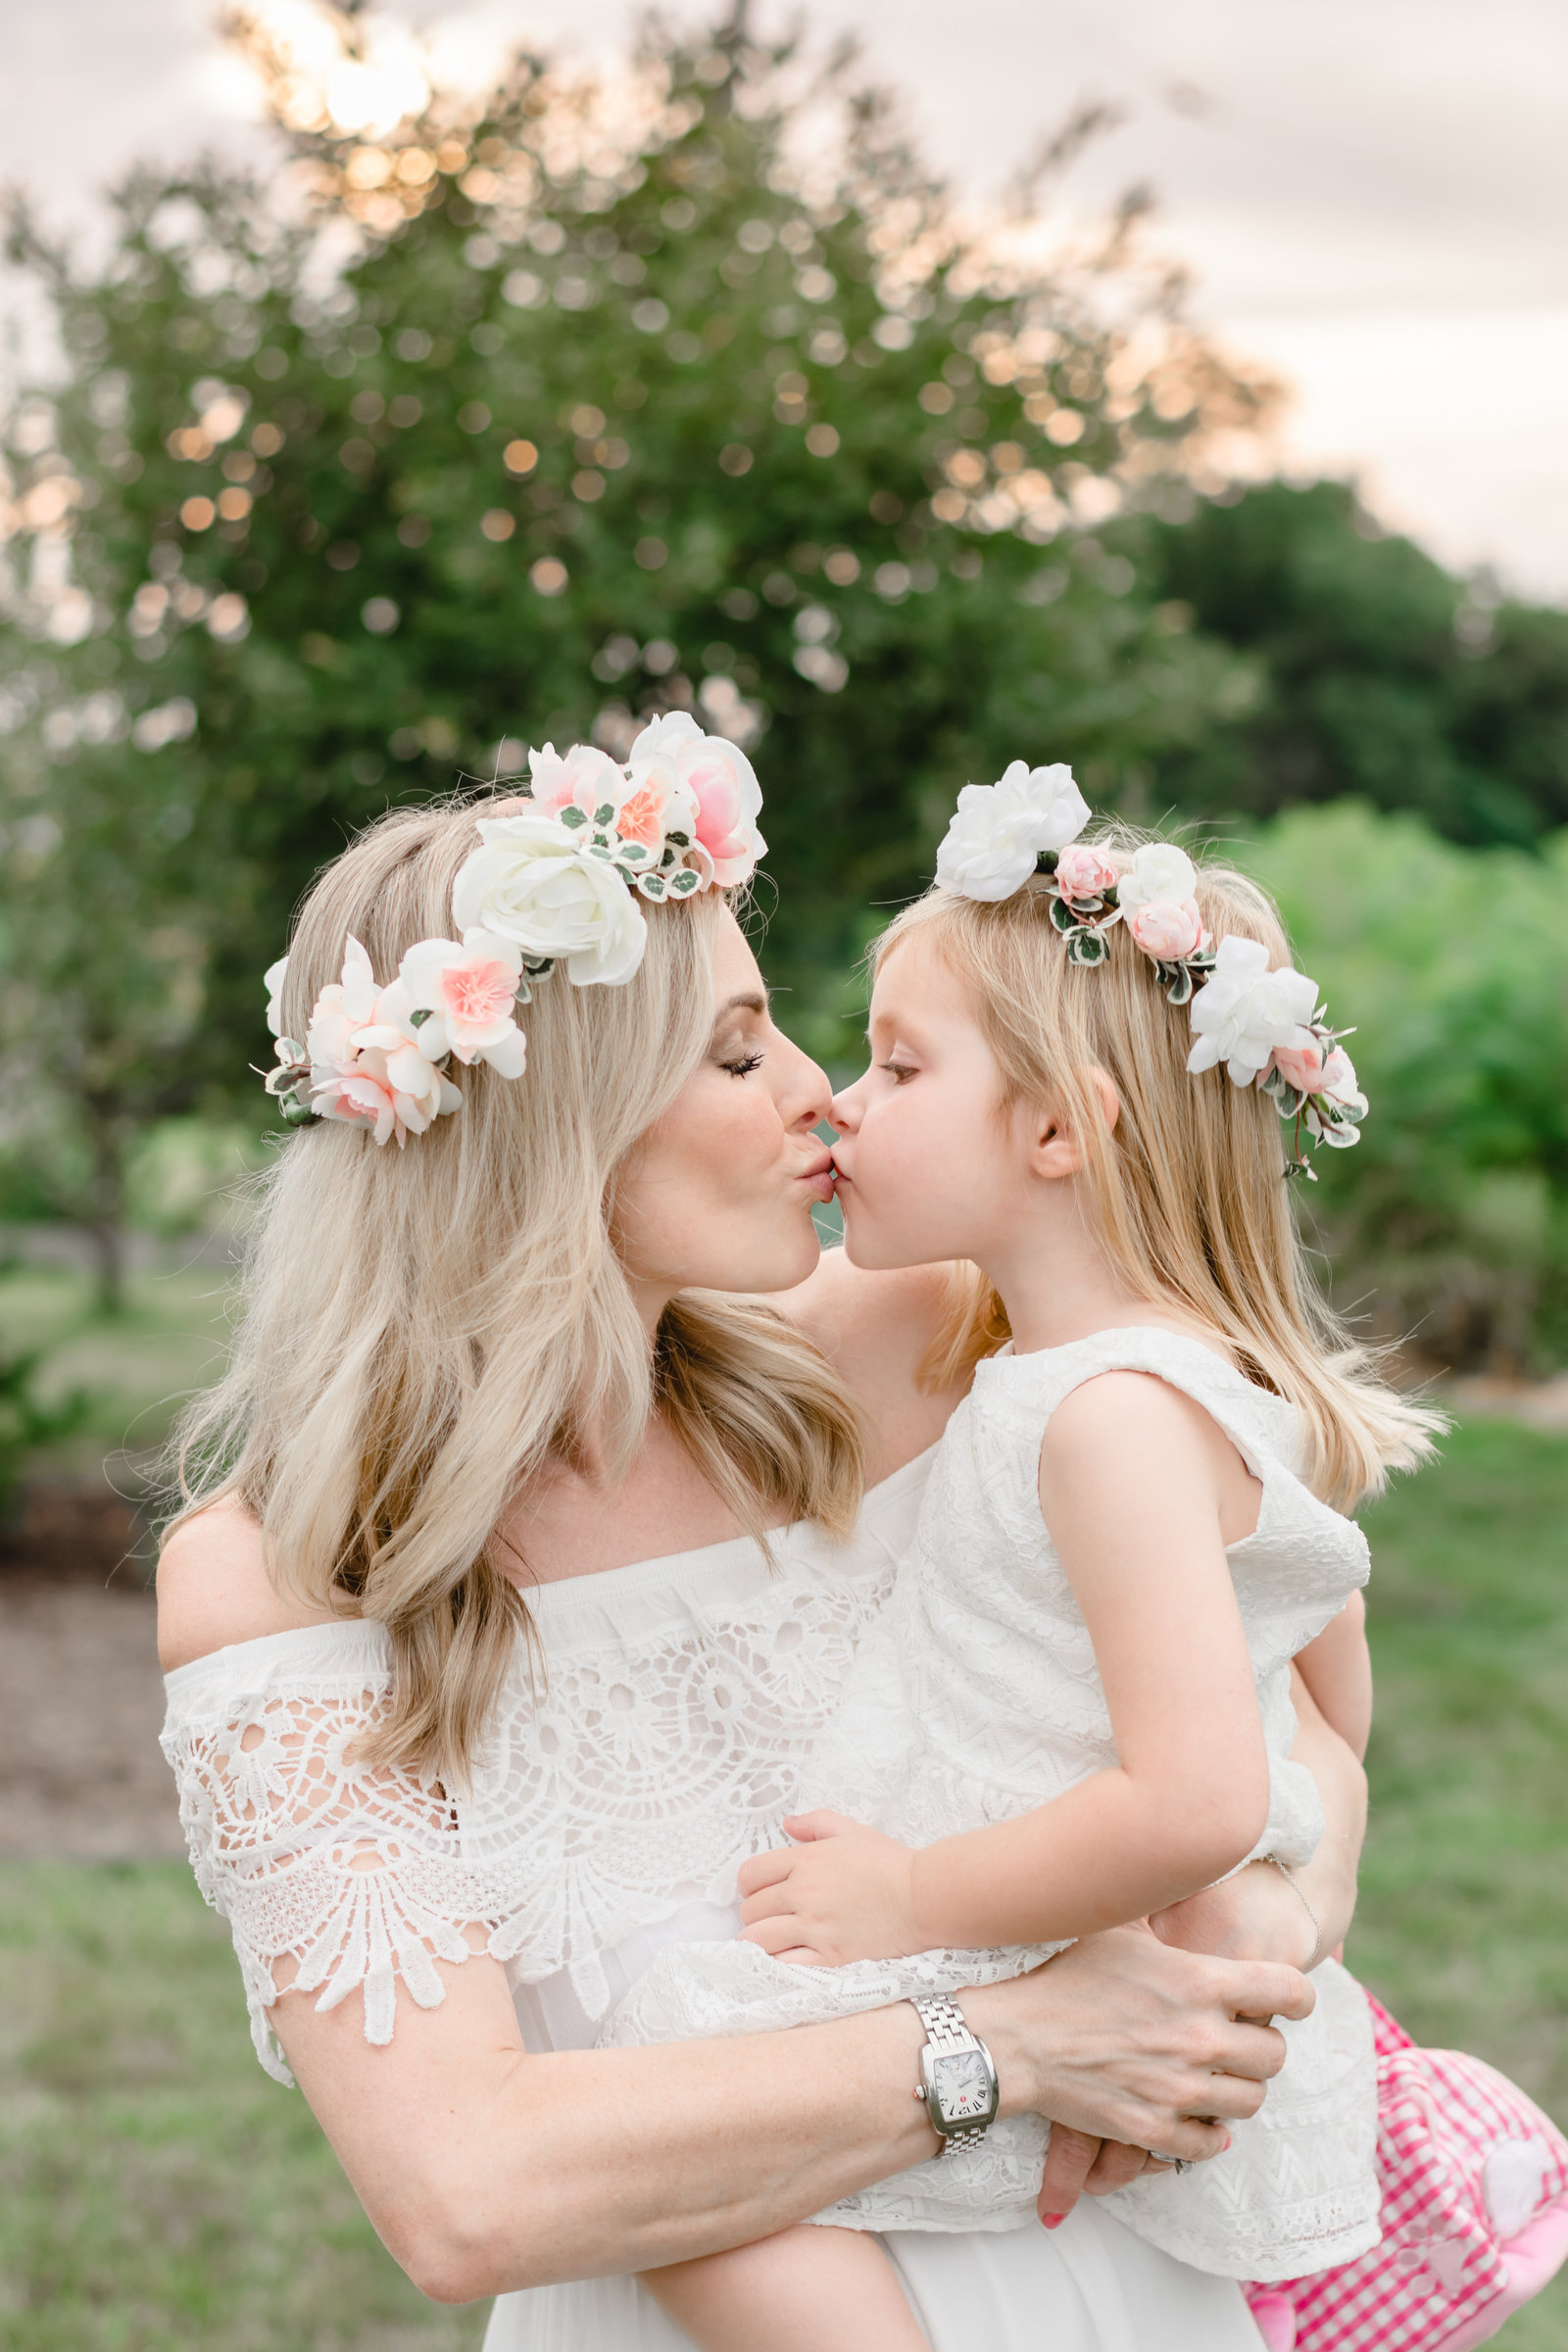 mom and daughter wearing matching flower crowns